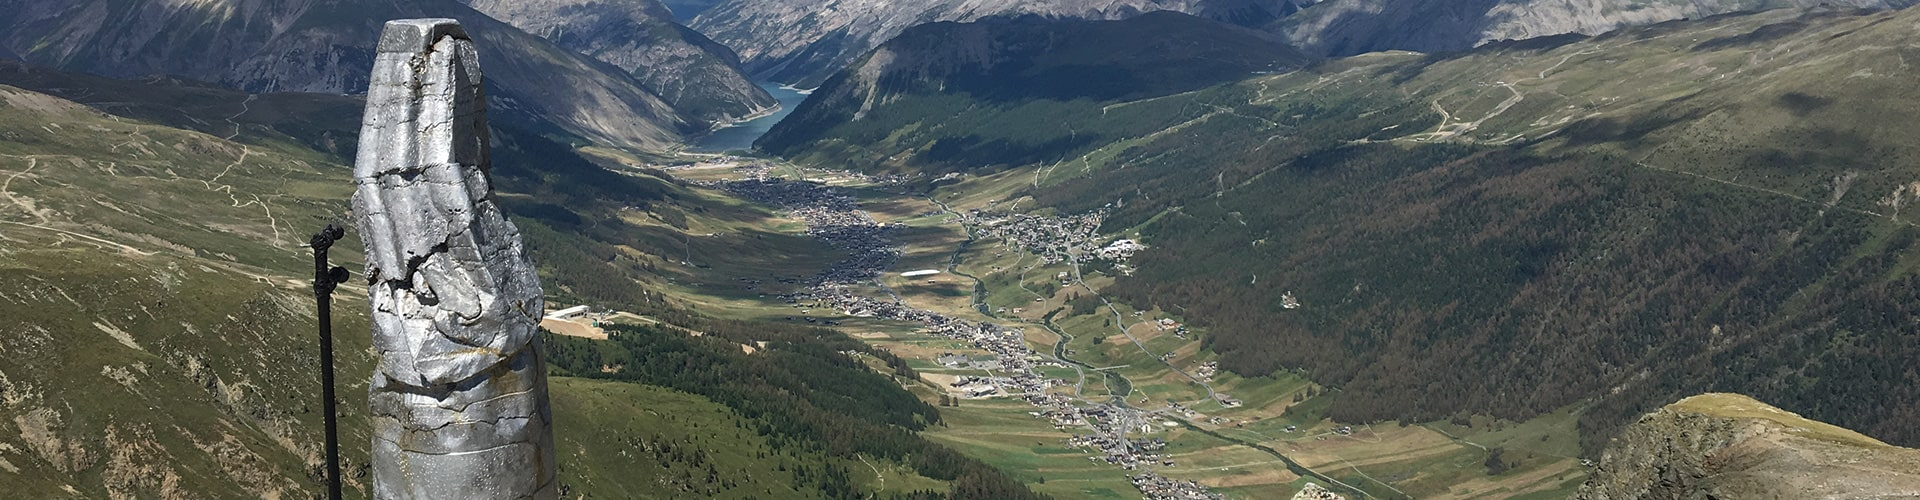 Madonon Hiking Tour Livigno